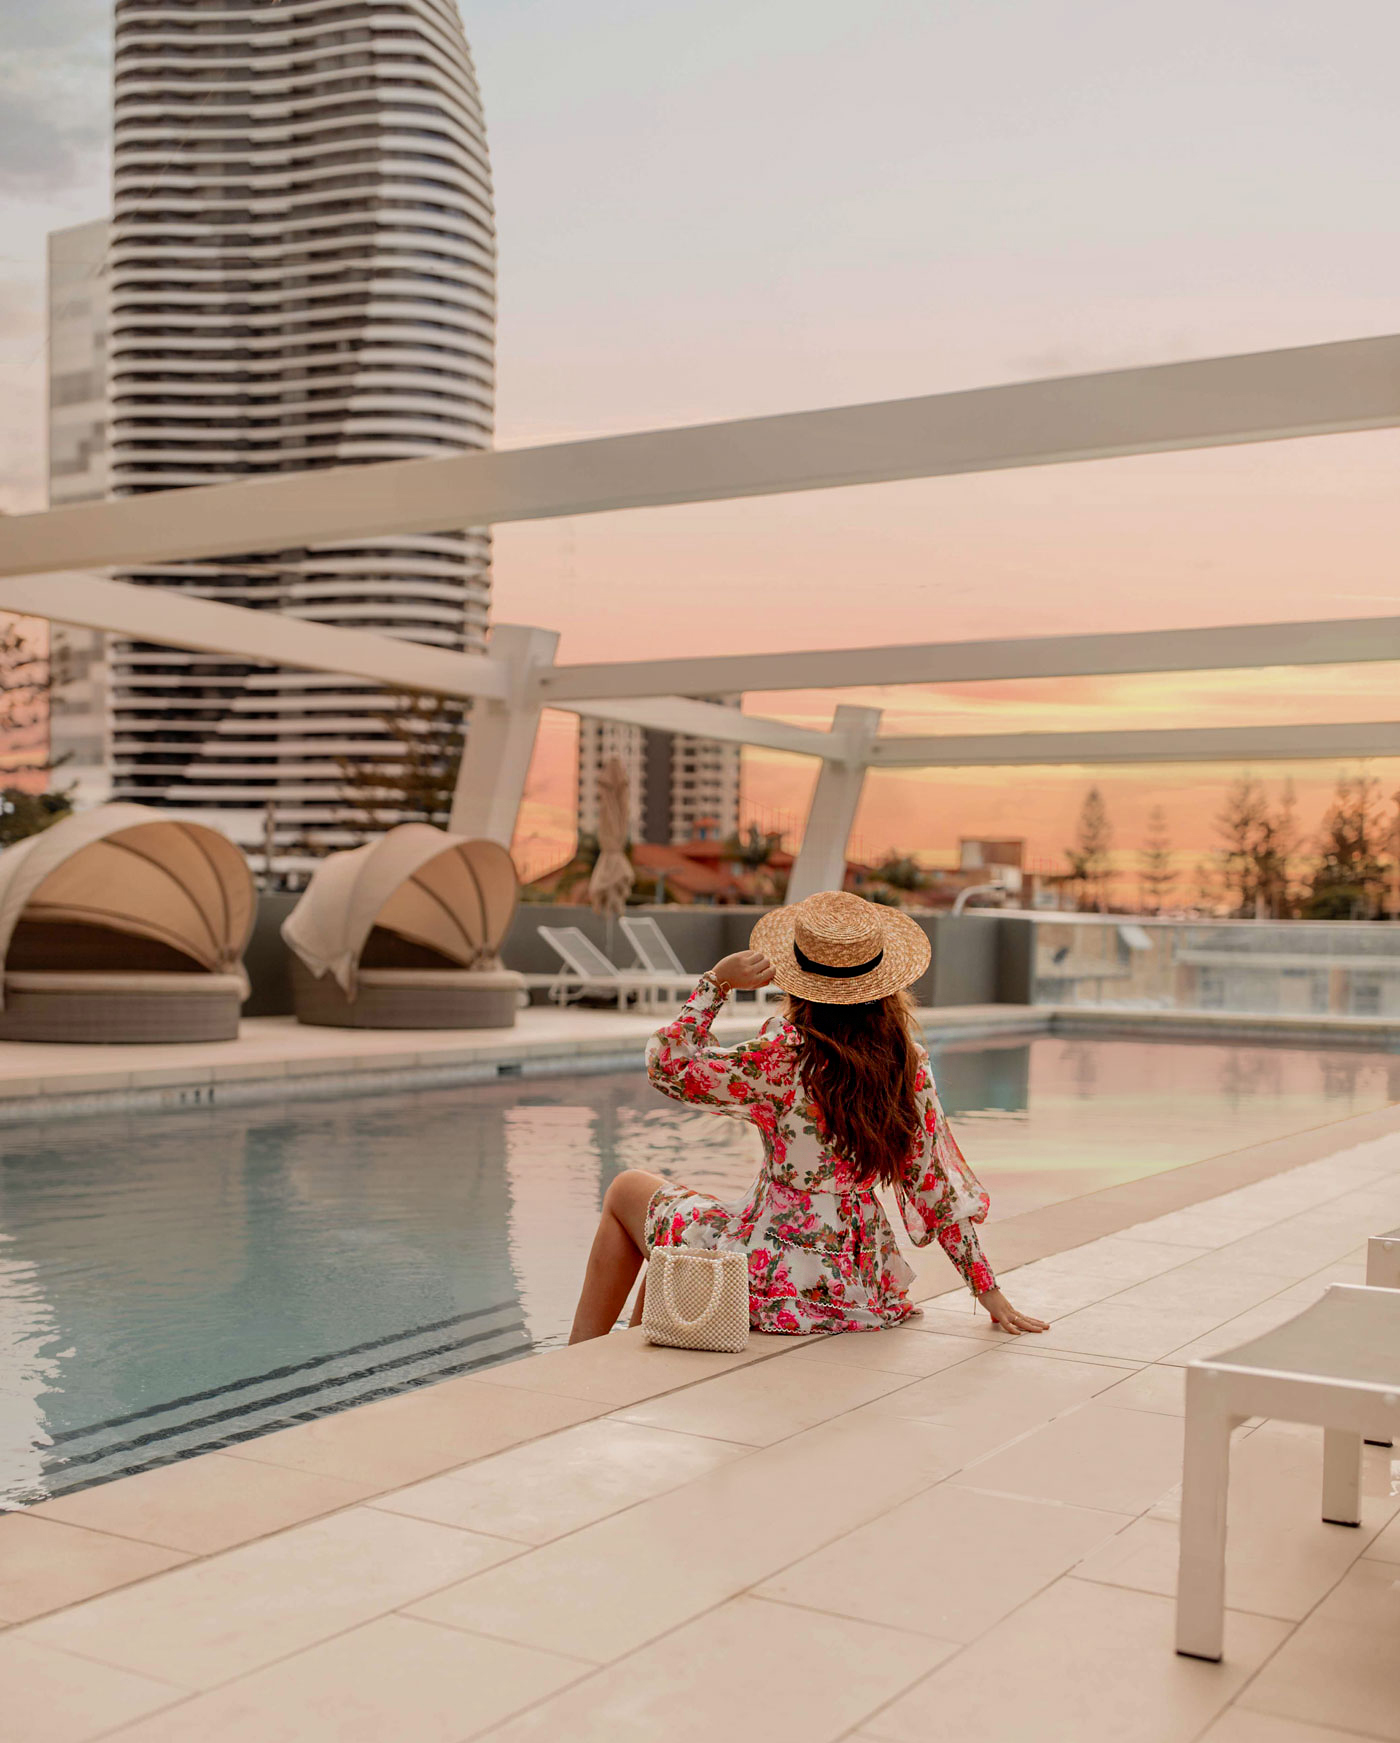 broadbeach-best-restaurant-hotel-avani-kelseyinlondon-kelsey-heinrichs-what-to-do-in-broadbeach-gold-coast-best-places-Avani Broadbeach-Gold-Coast-Residences